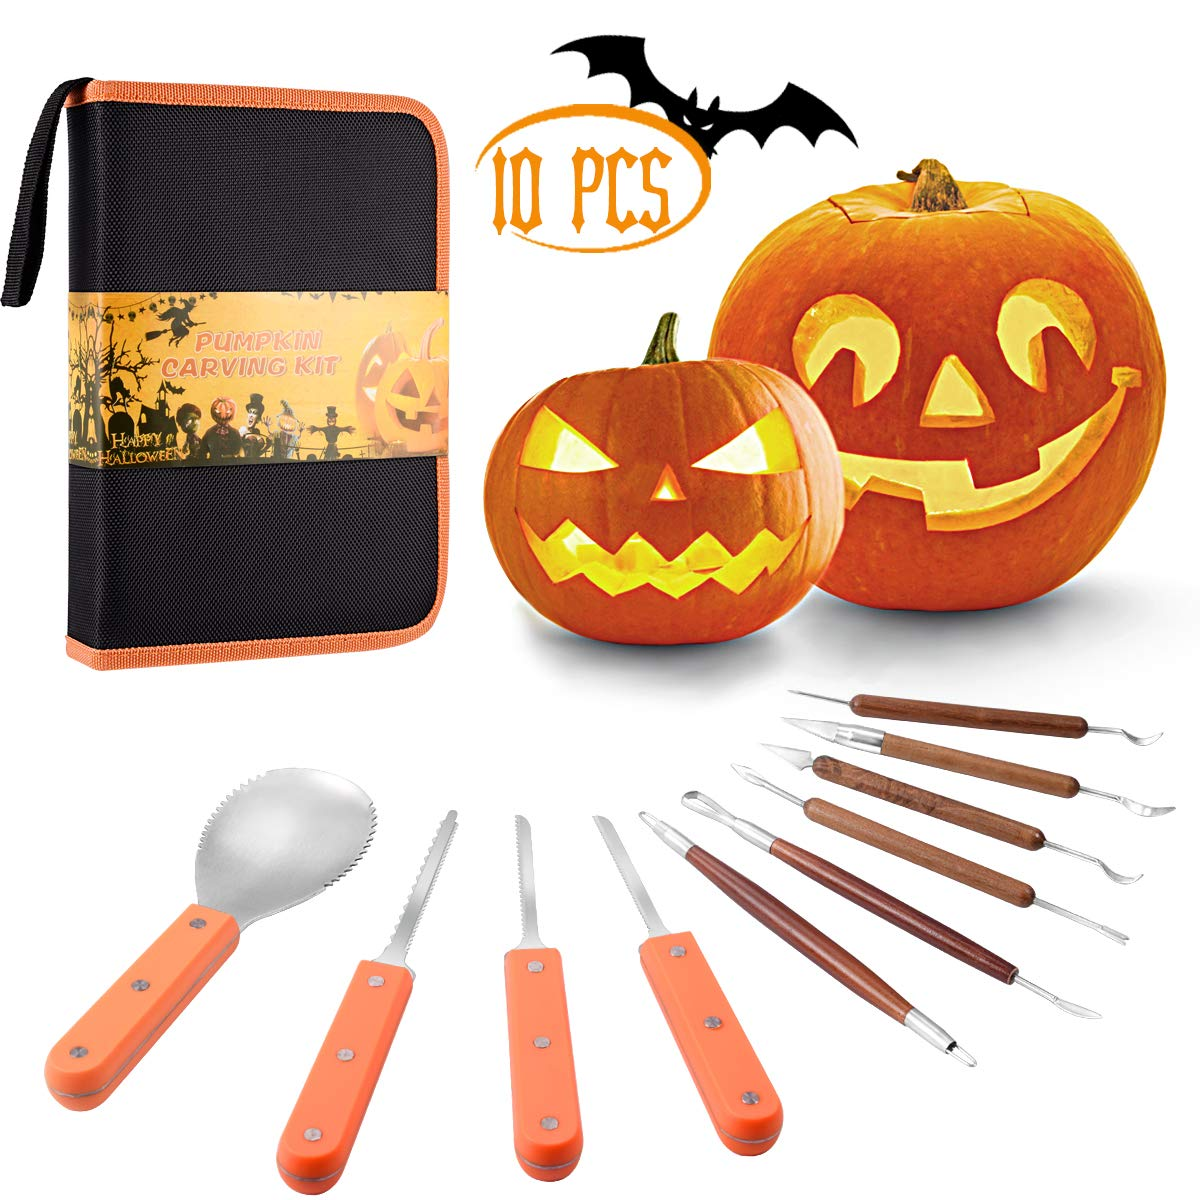 Pumpkin Carving Kit, 10 Pcs Durable Stainless Steel Pumpkin Carving Stencils for Halloween Decorations, Advanced Wood Carving Tools Kit for Easily Sculpting and Storage by Holiky